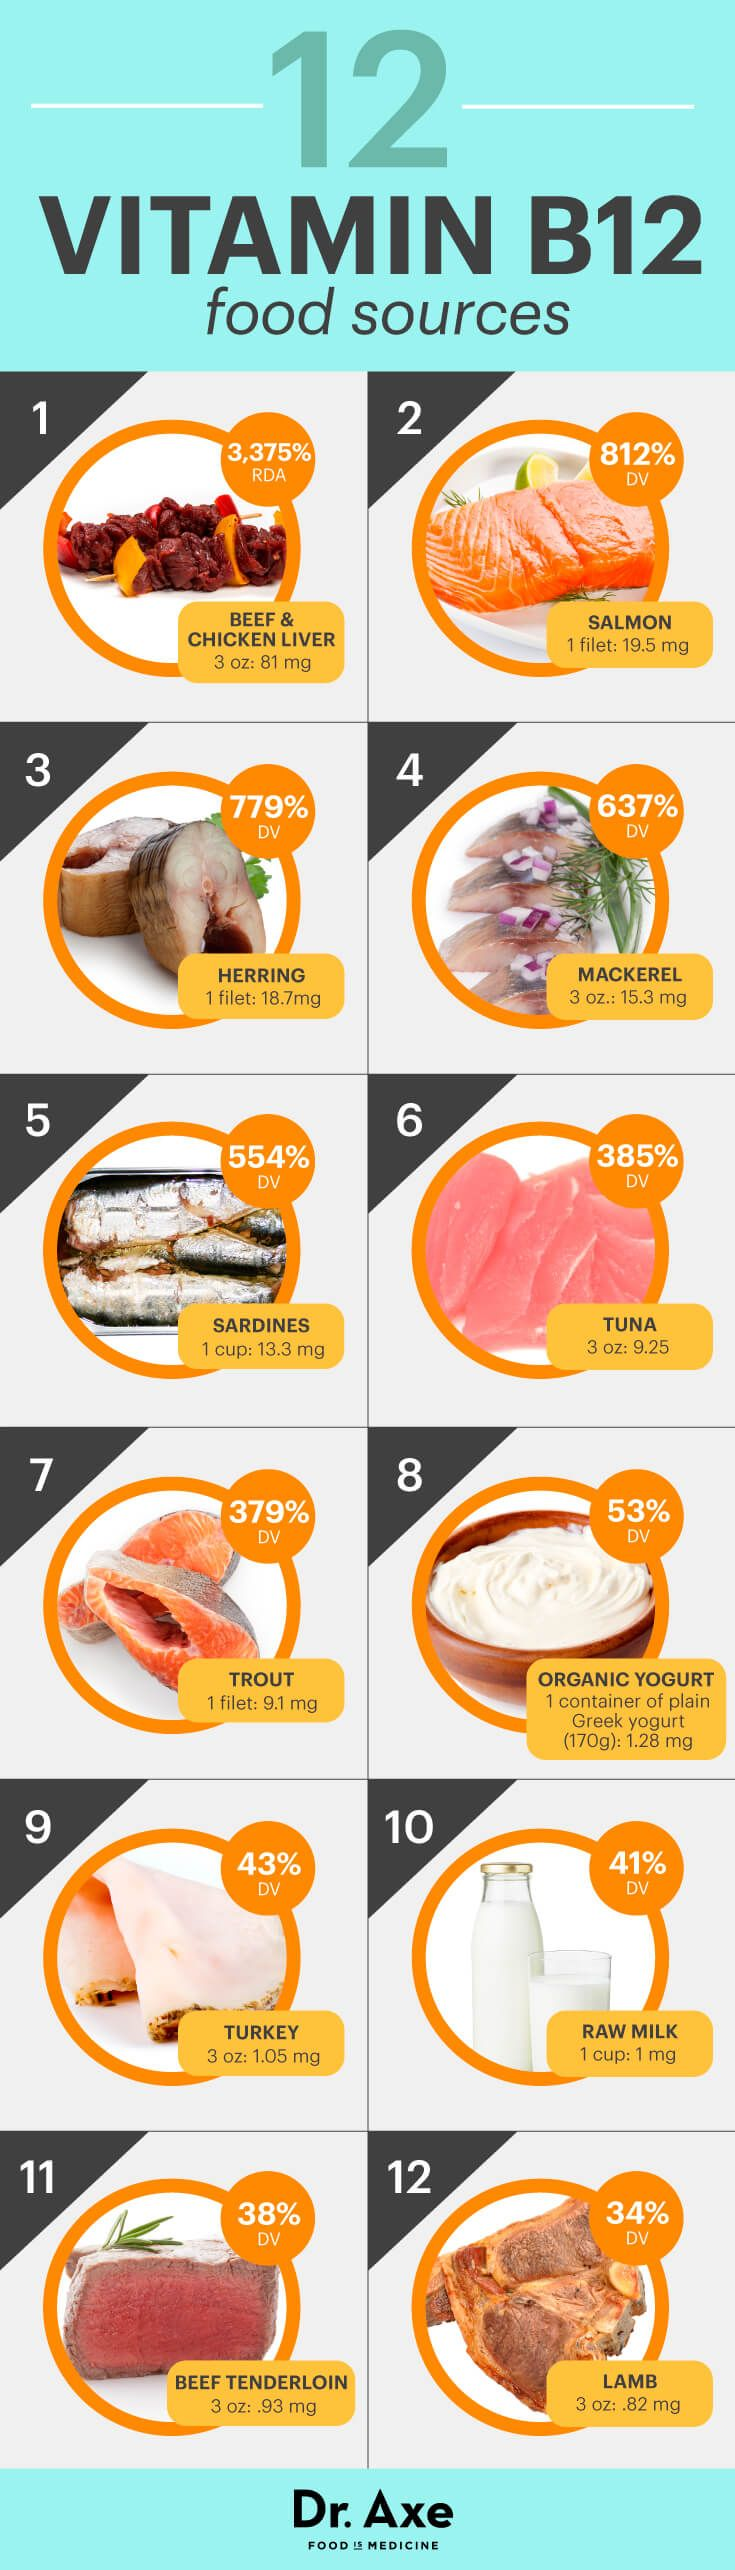 Vitamin B12 foods - *please be aware that you need to consult with your doctor before adding these foods in your diet. Treatment for certain deficiencies need to be checkout first.